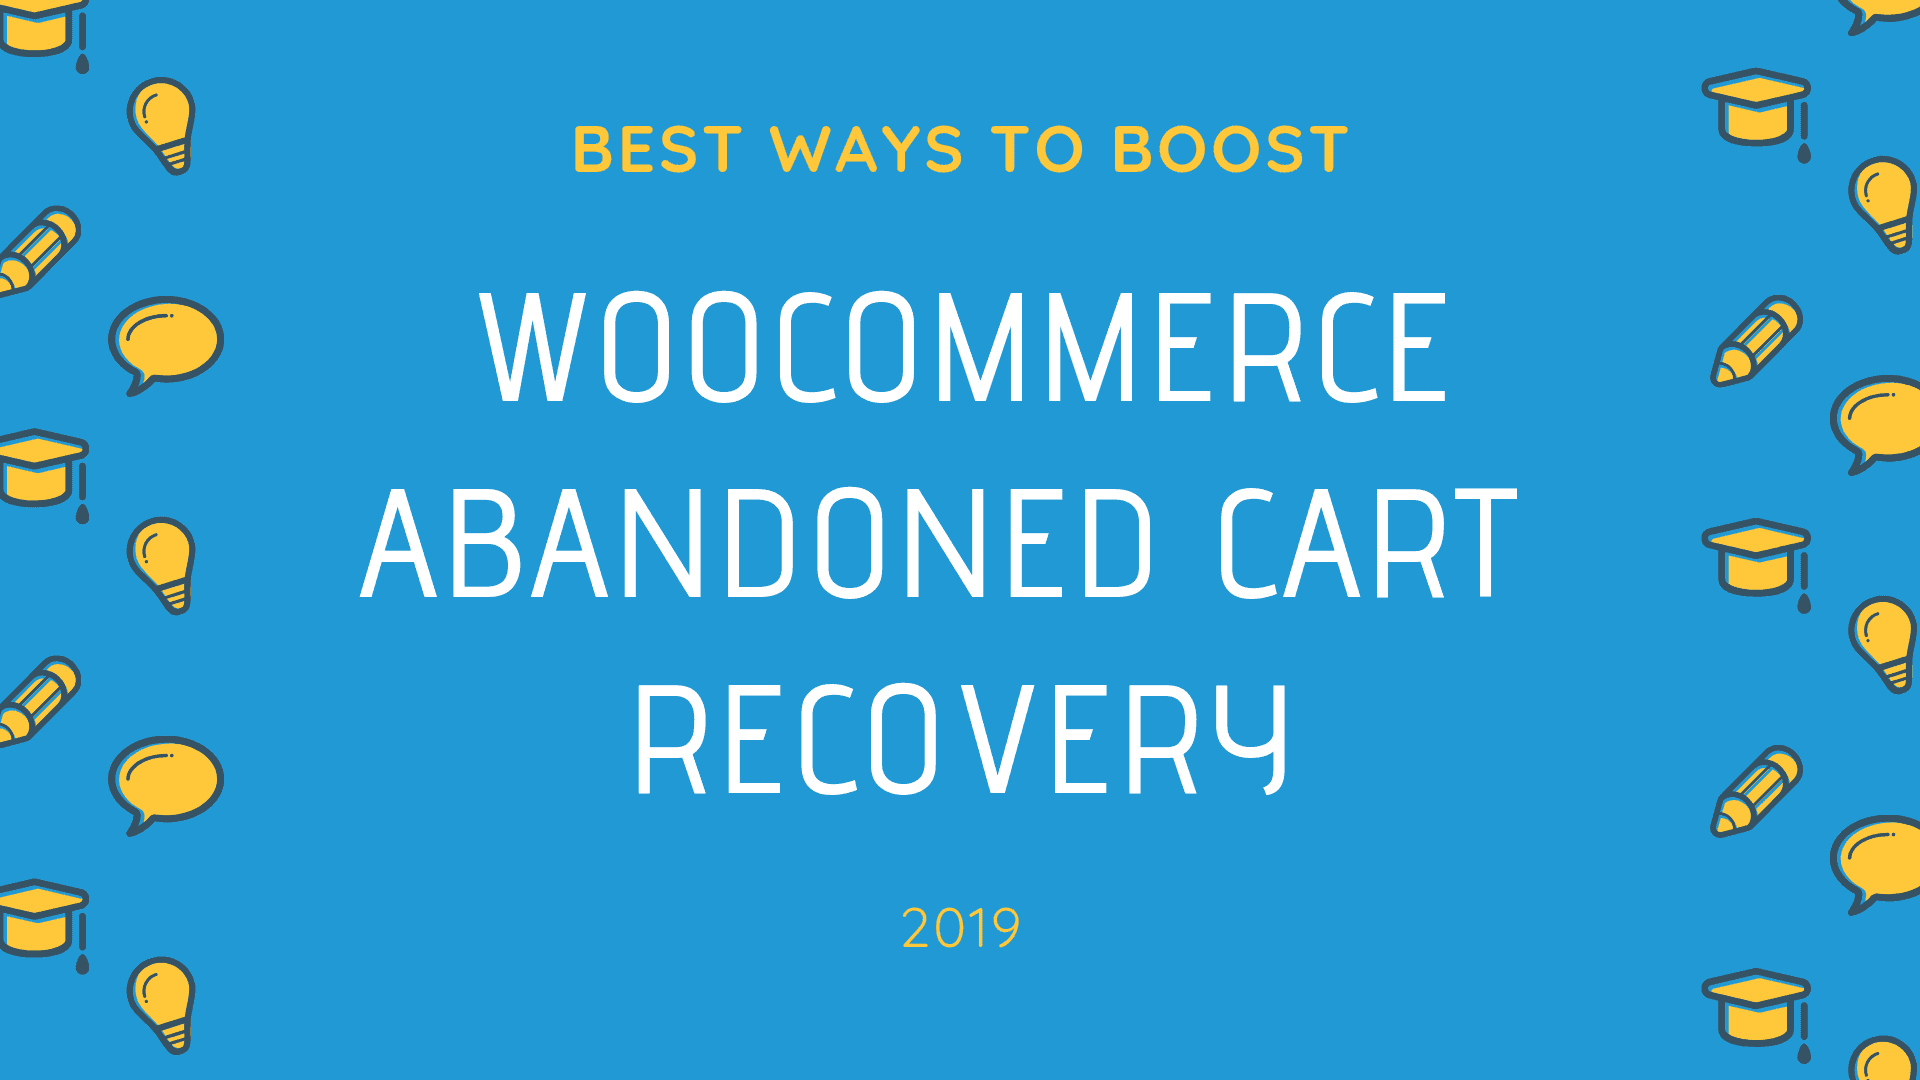 best-ways-to-boost-woocommerce-abandoned-cart-recovery